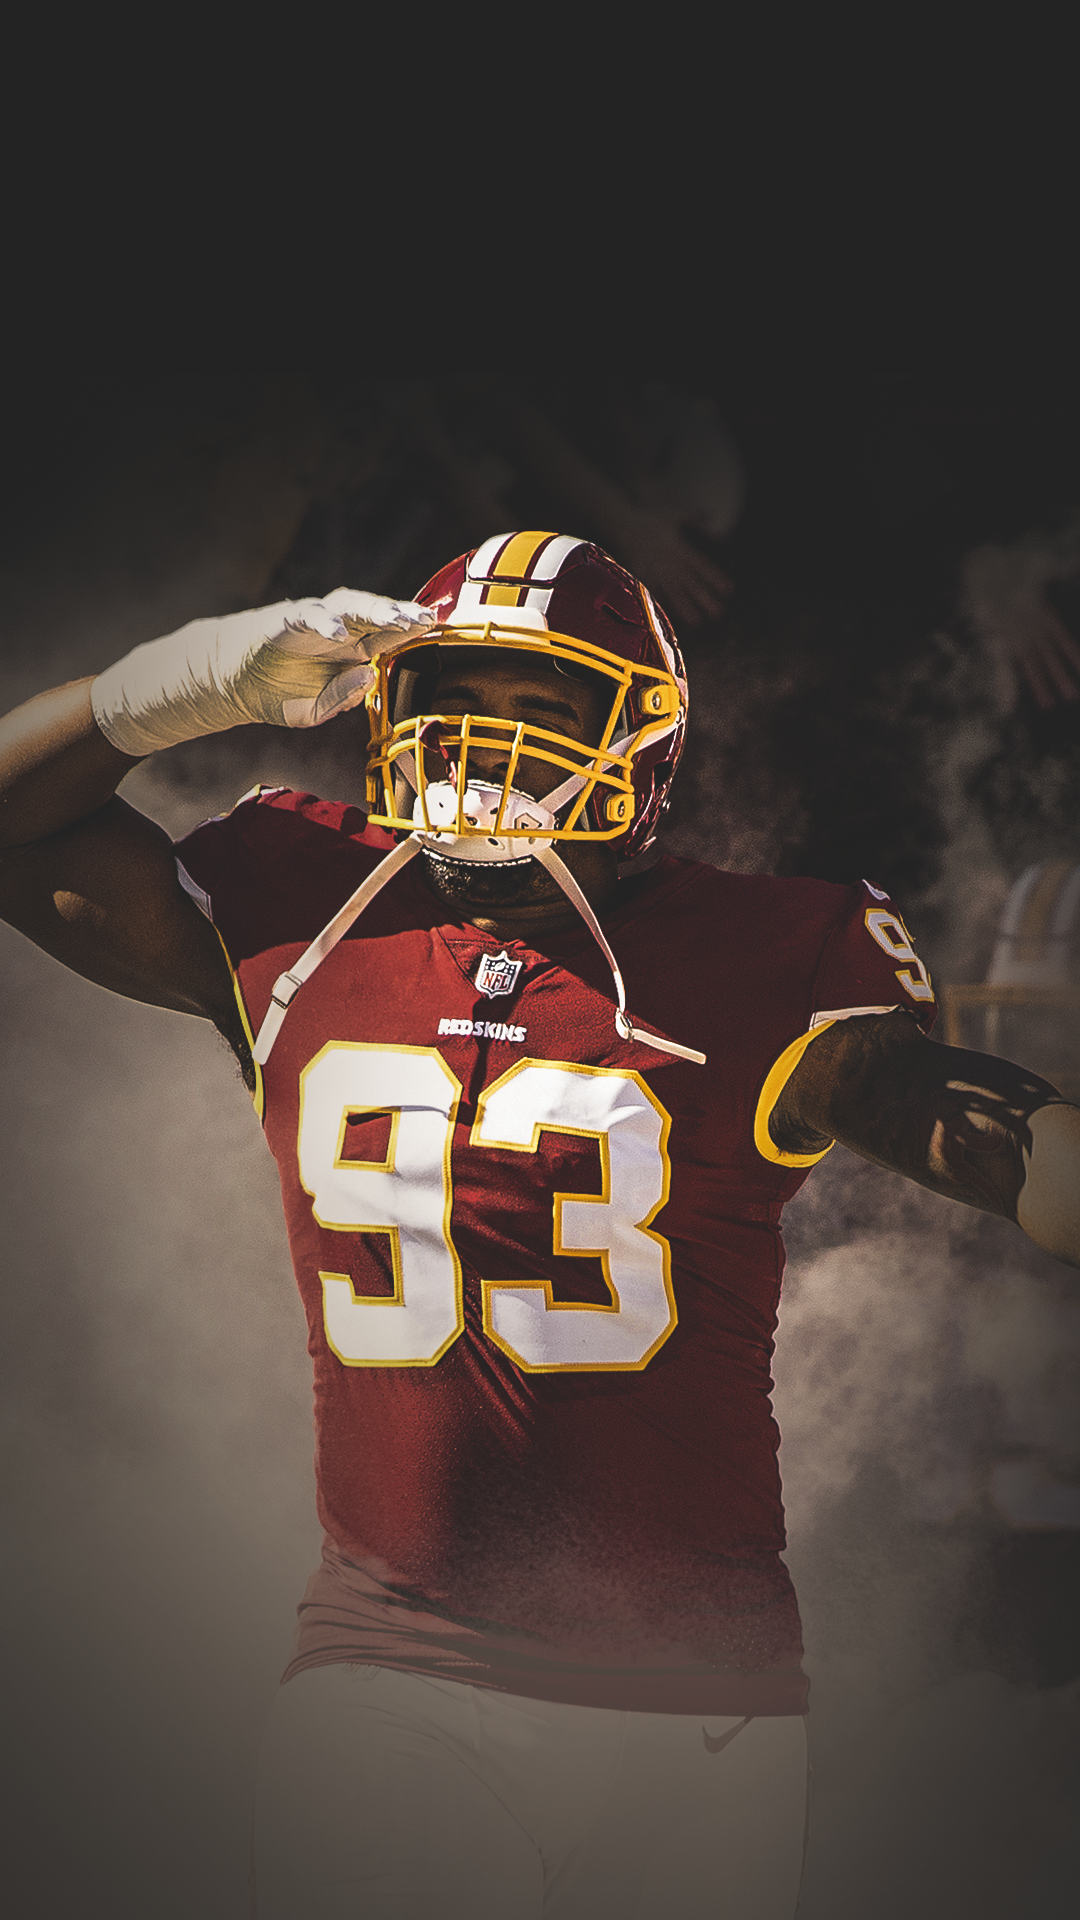 Washington Redskins Wallpapers Top Free Washington Redskins